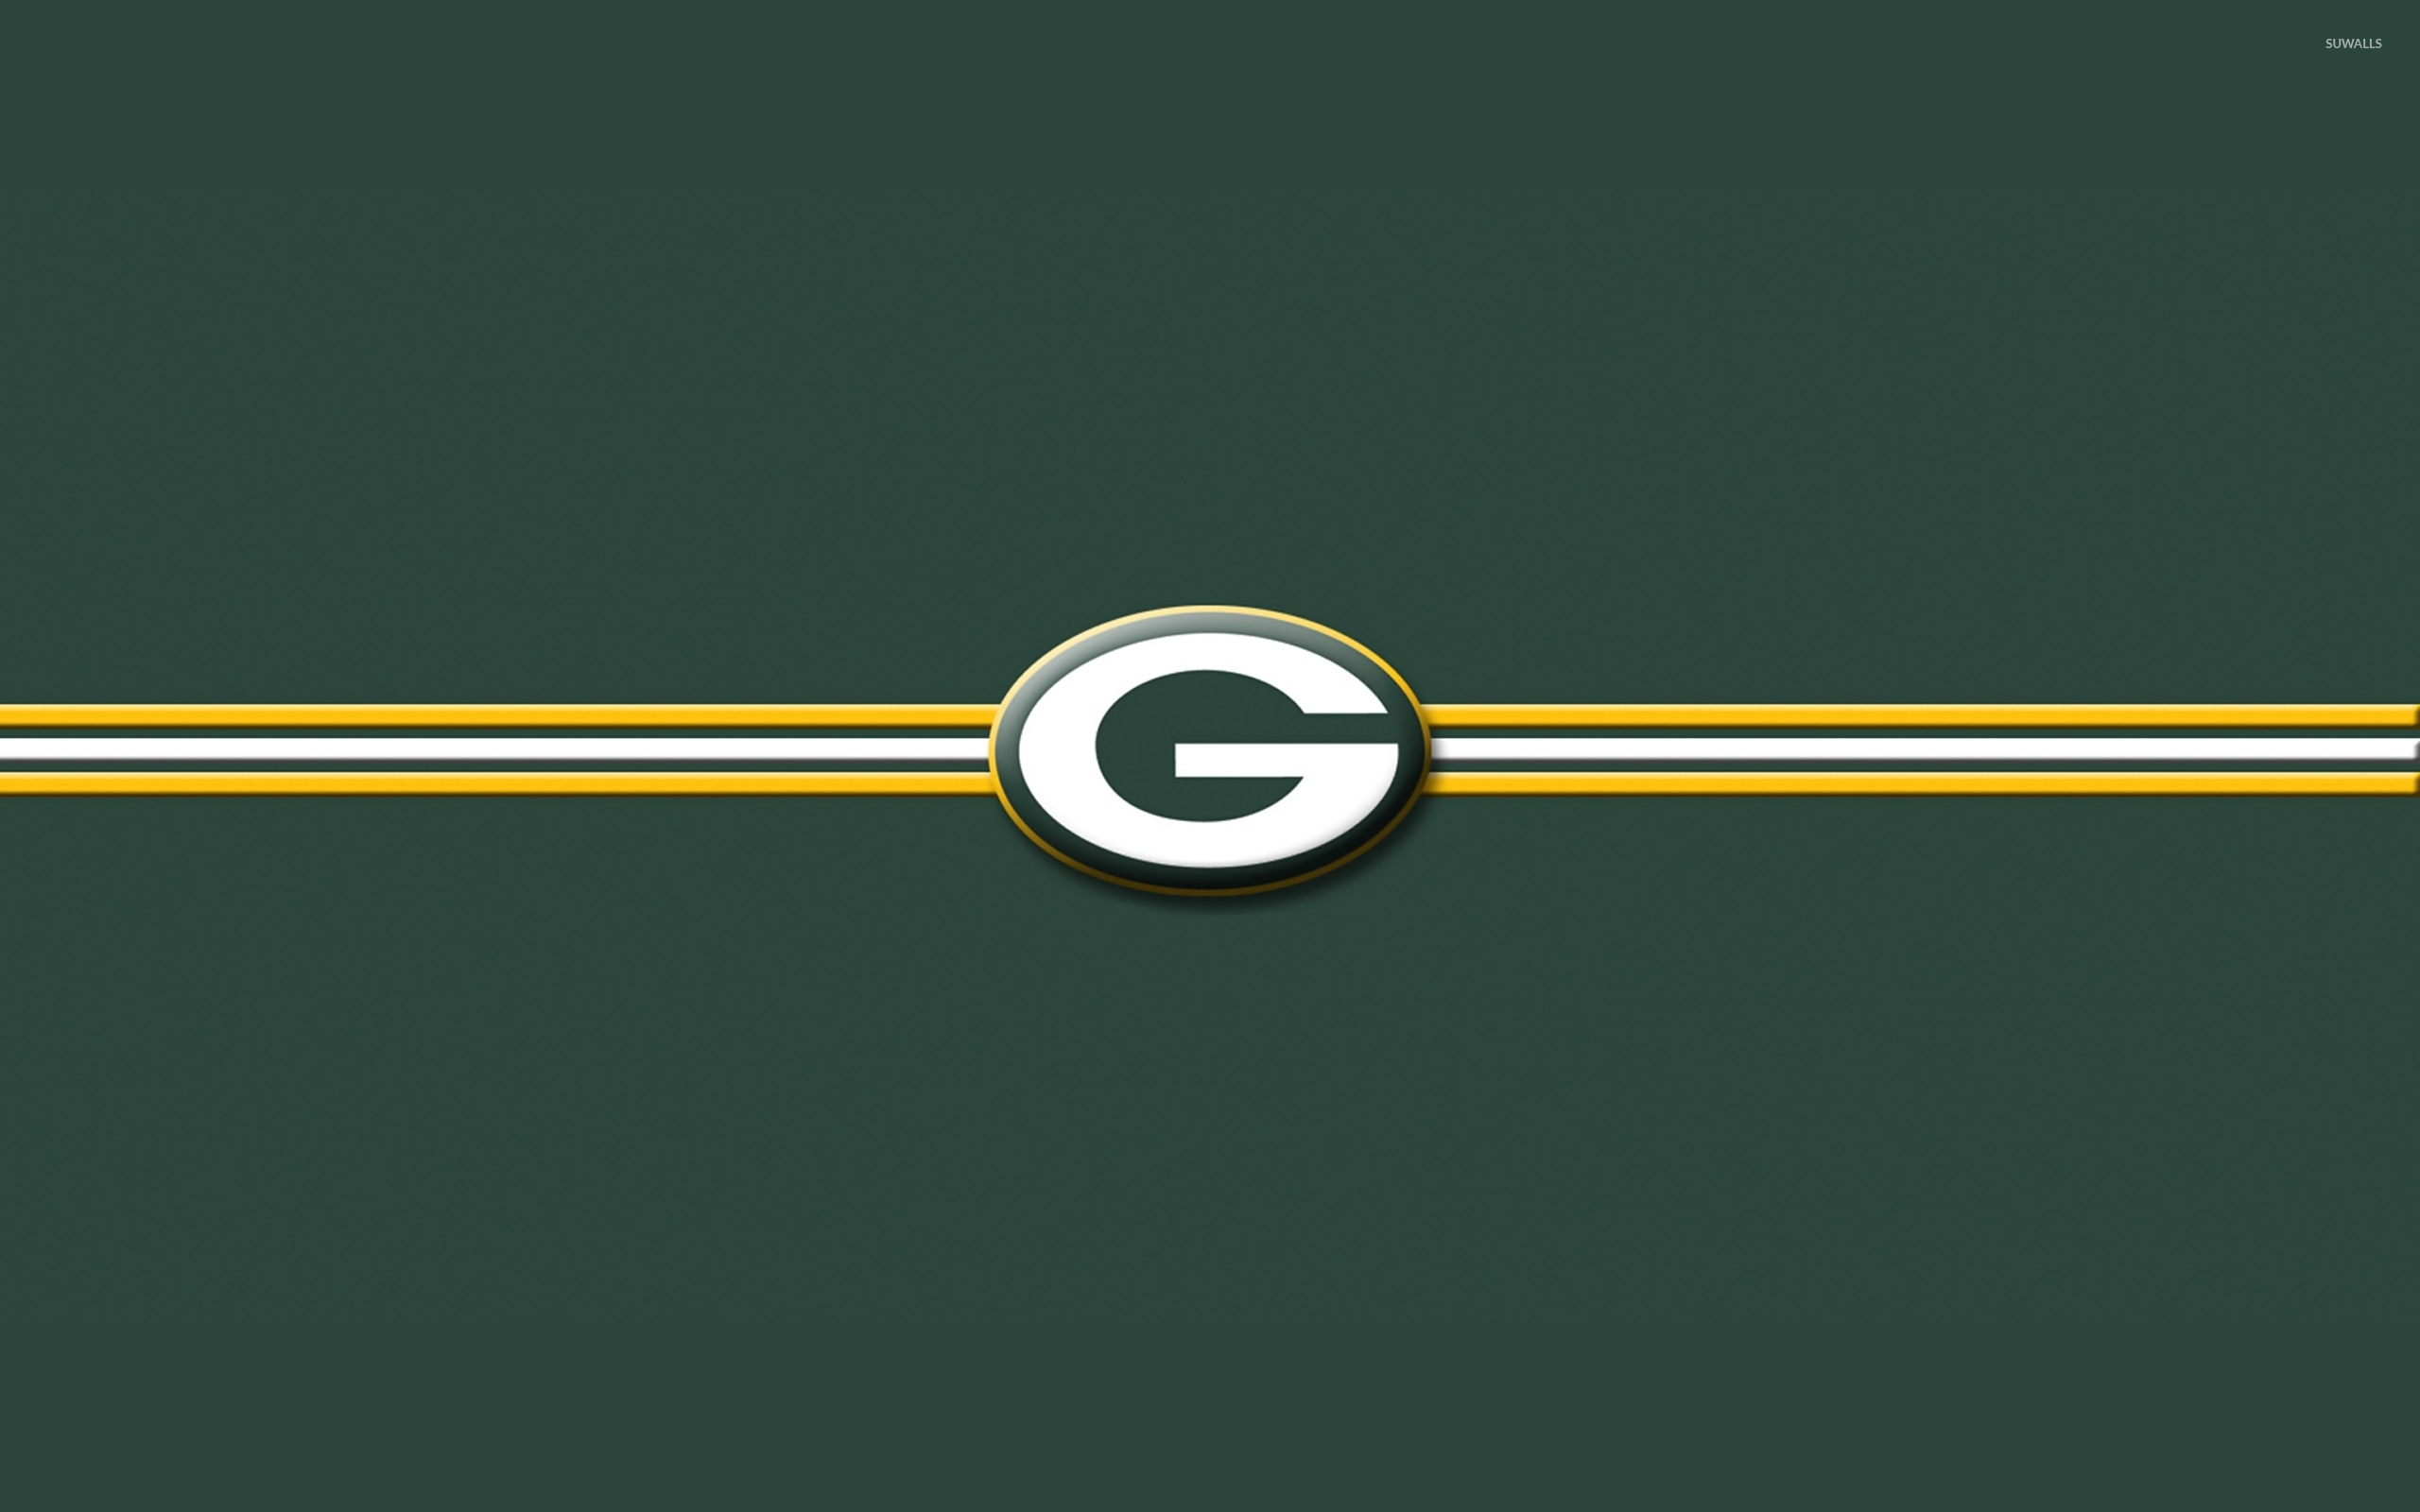 Green Bay Packers Phone Wallpaper